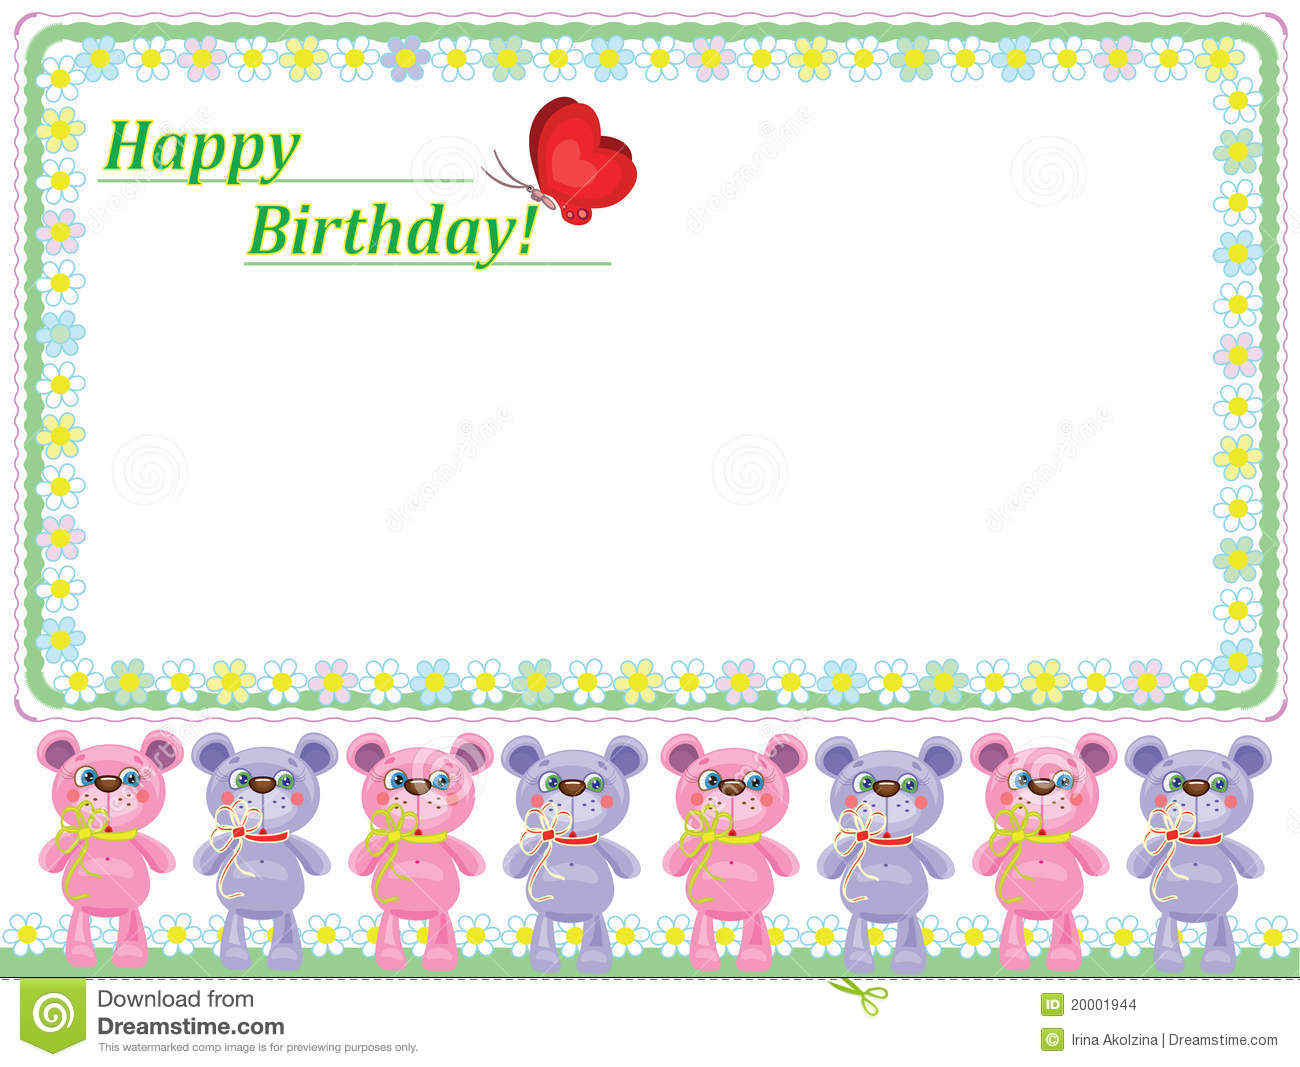 Small Cute Baby Wallpaper Download Birthday Background With Bears Stock Images Image 20001944